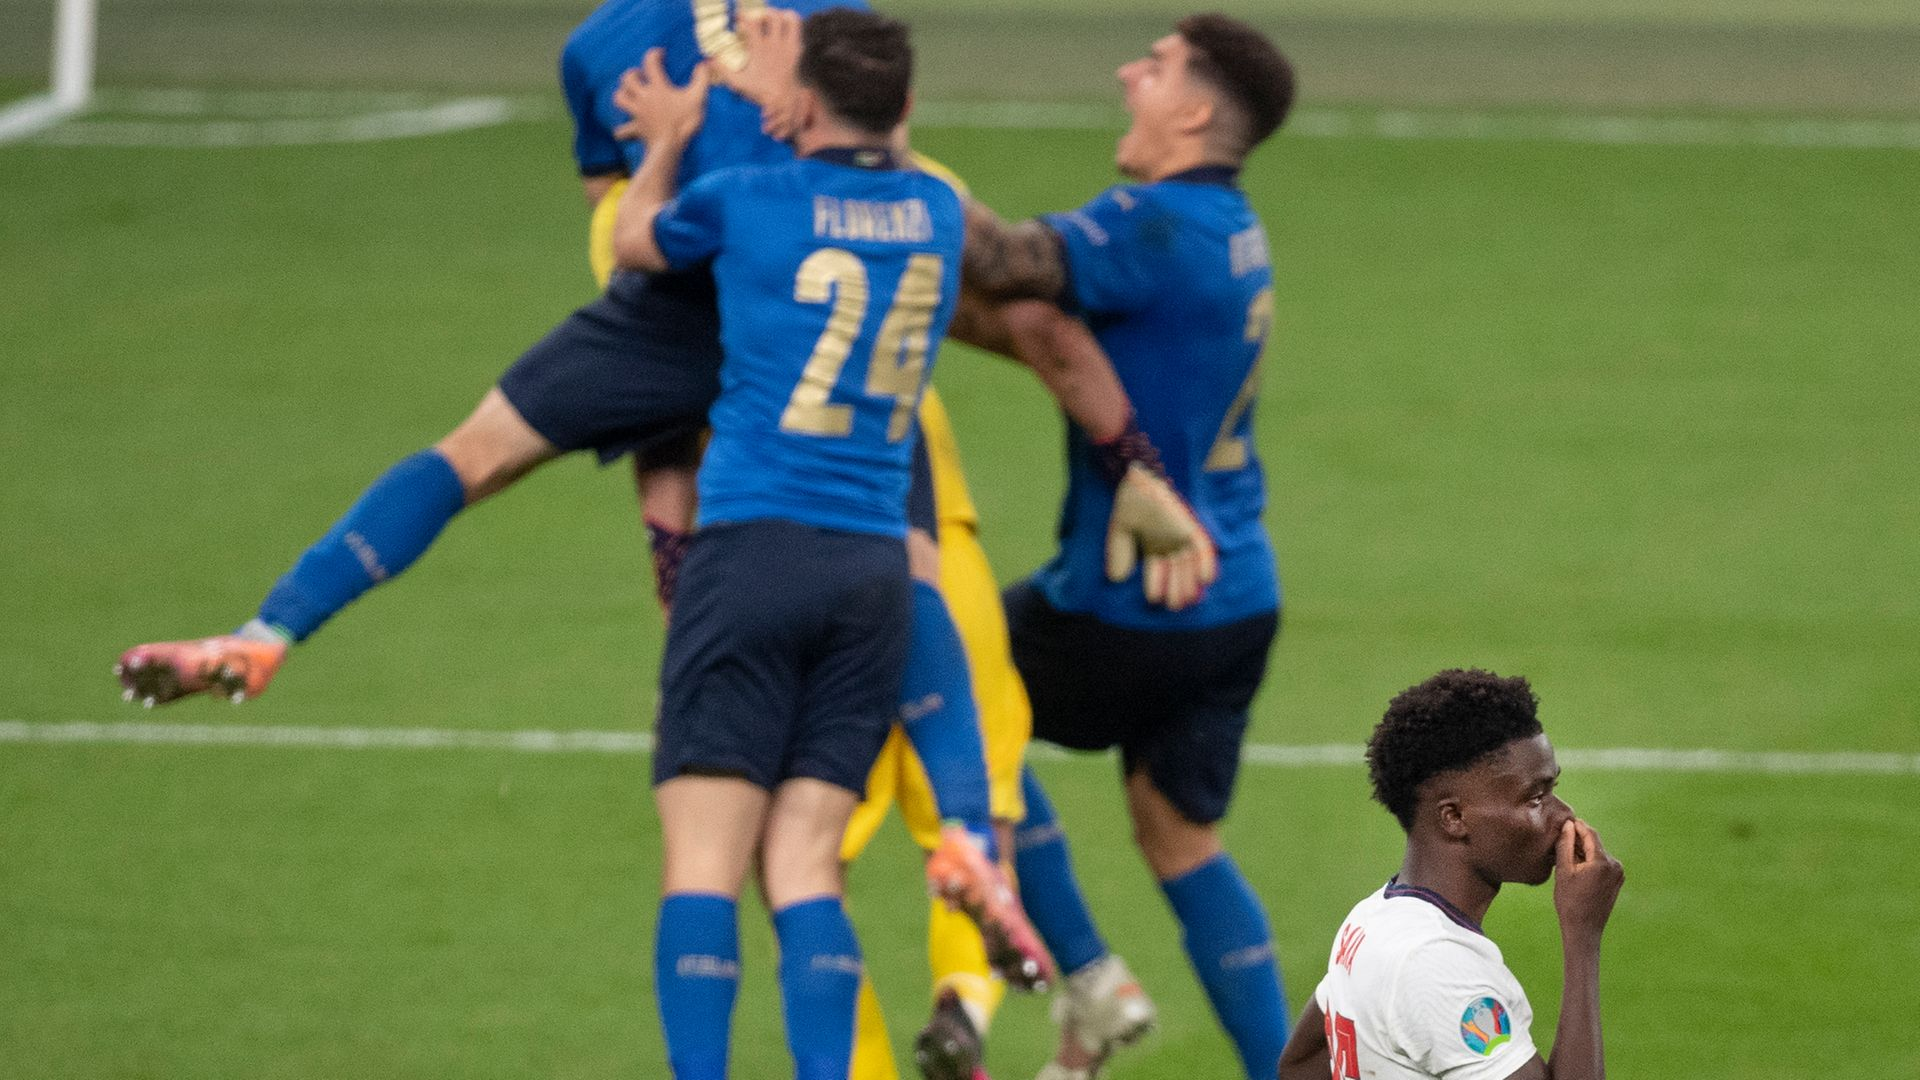 Italy celebrate in front of Bukayo Saka of England after he misses the crucial penalty of the shootout in the UEFA Euro 2020 Championship final - Credit: Photo by Visionhaus/Getty Images